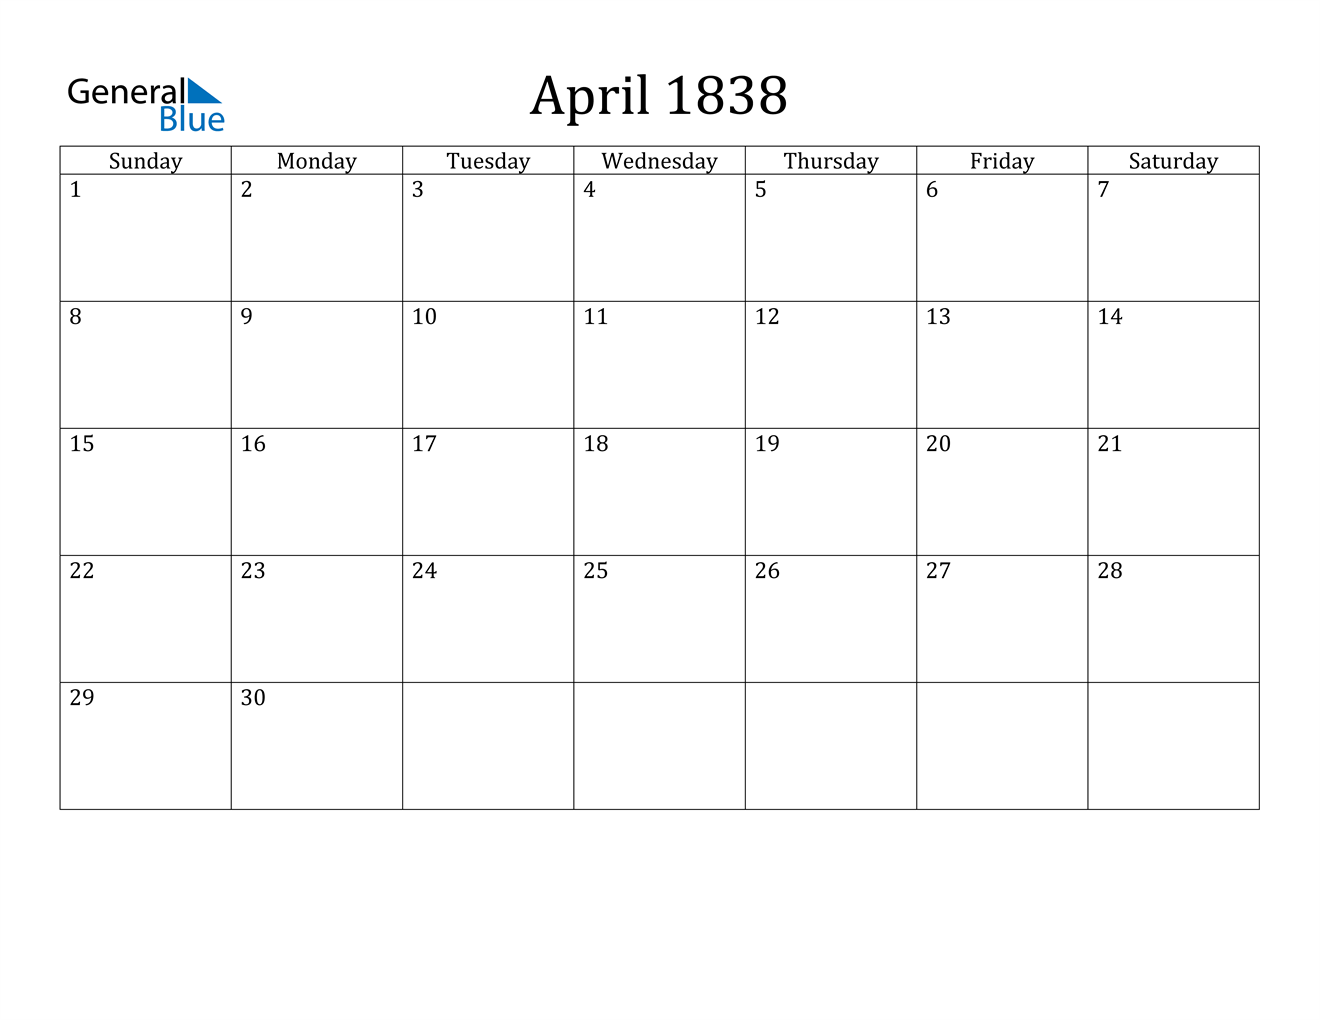 Image of April 1838 Calendar